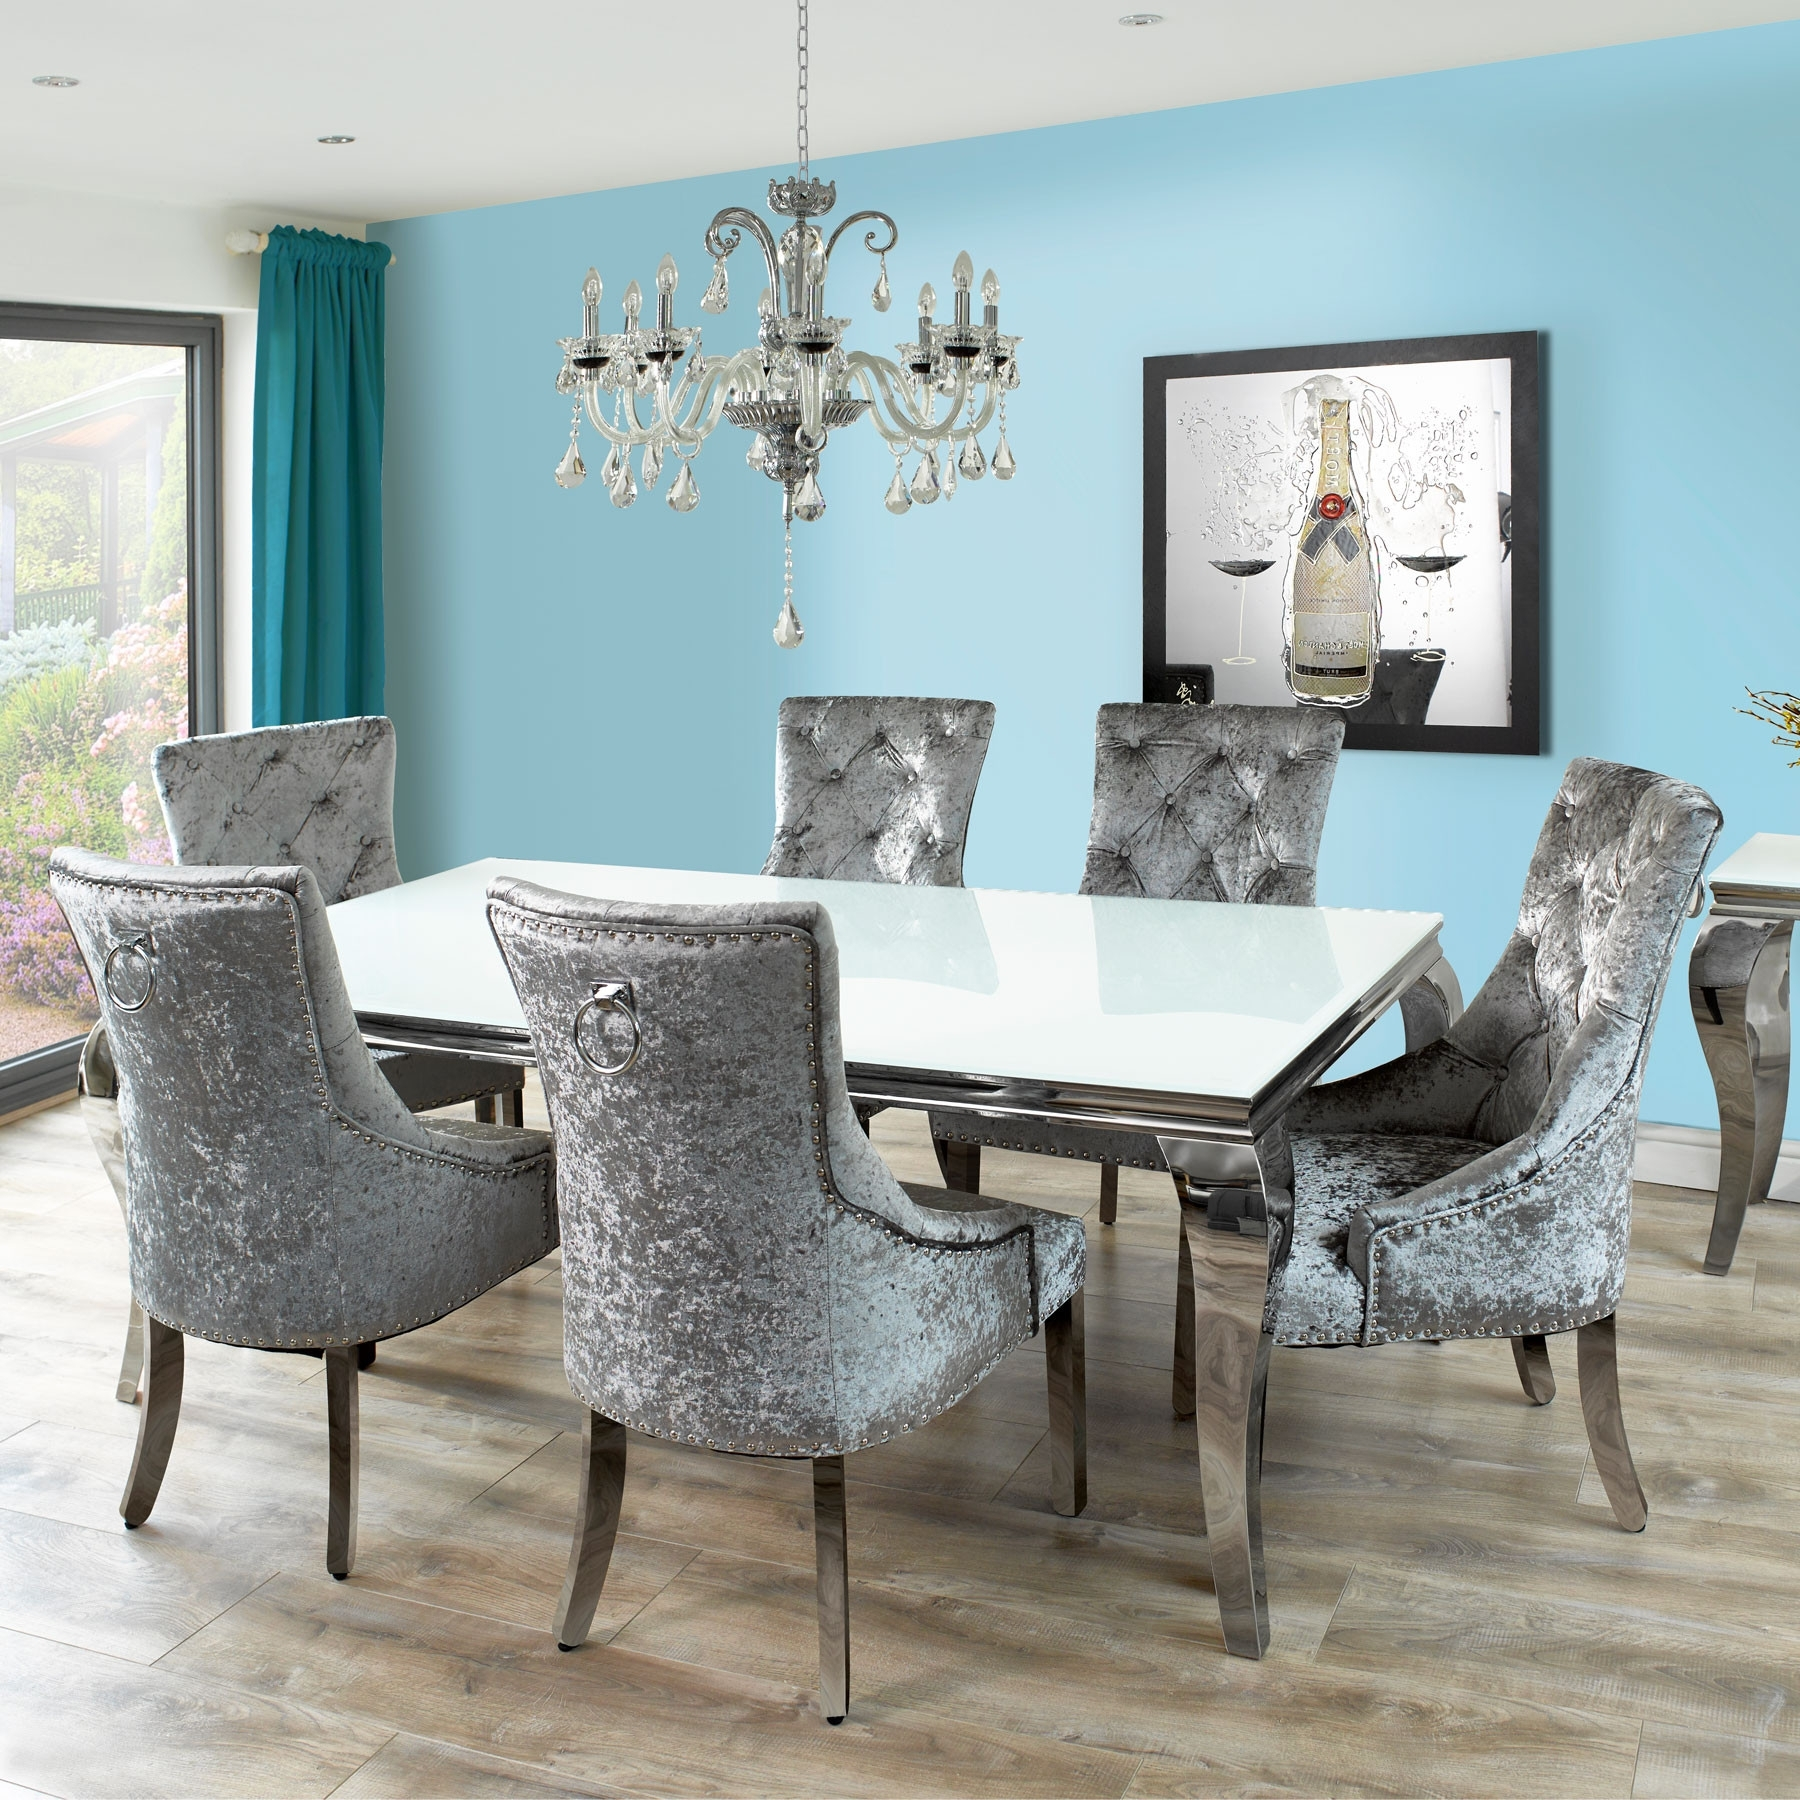 Fadenza White Glass Dining Table & 6 Silver Chairs With Knocker And Pertaining To Preferred Cheap Glass Dining Tables And 6 Chairs (Gallery 2 of 25)